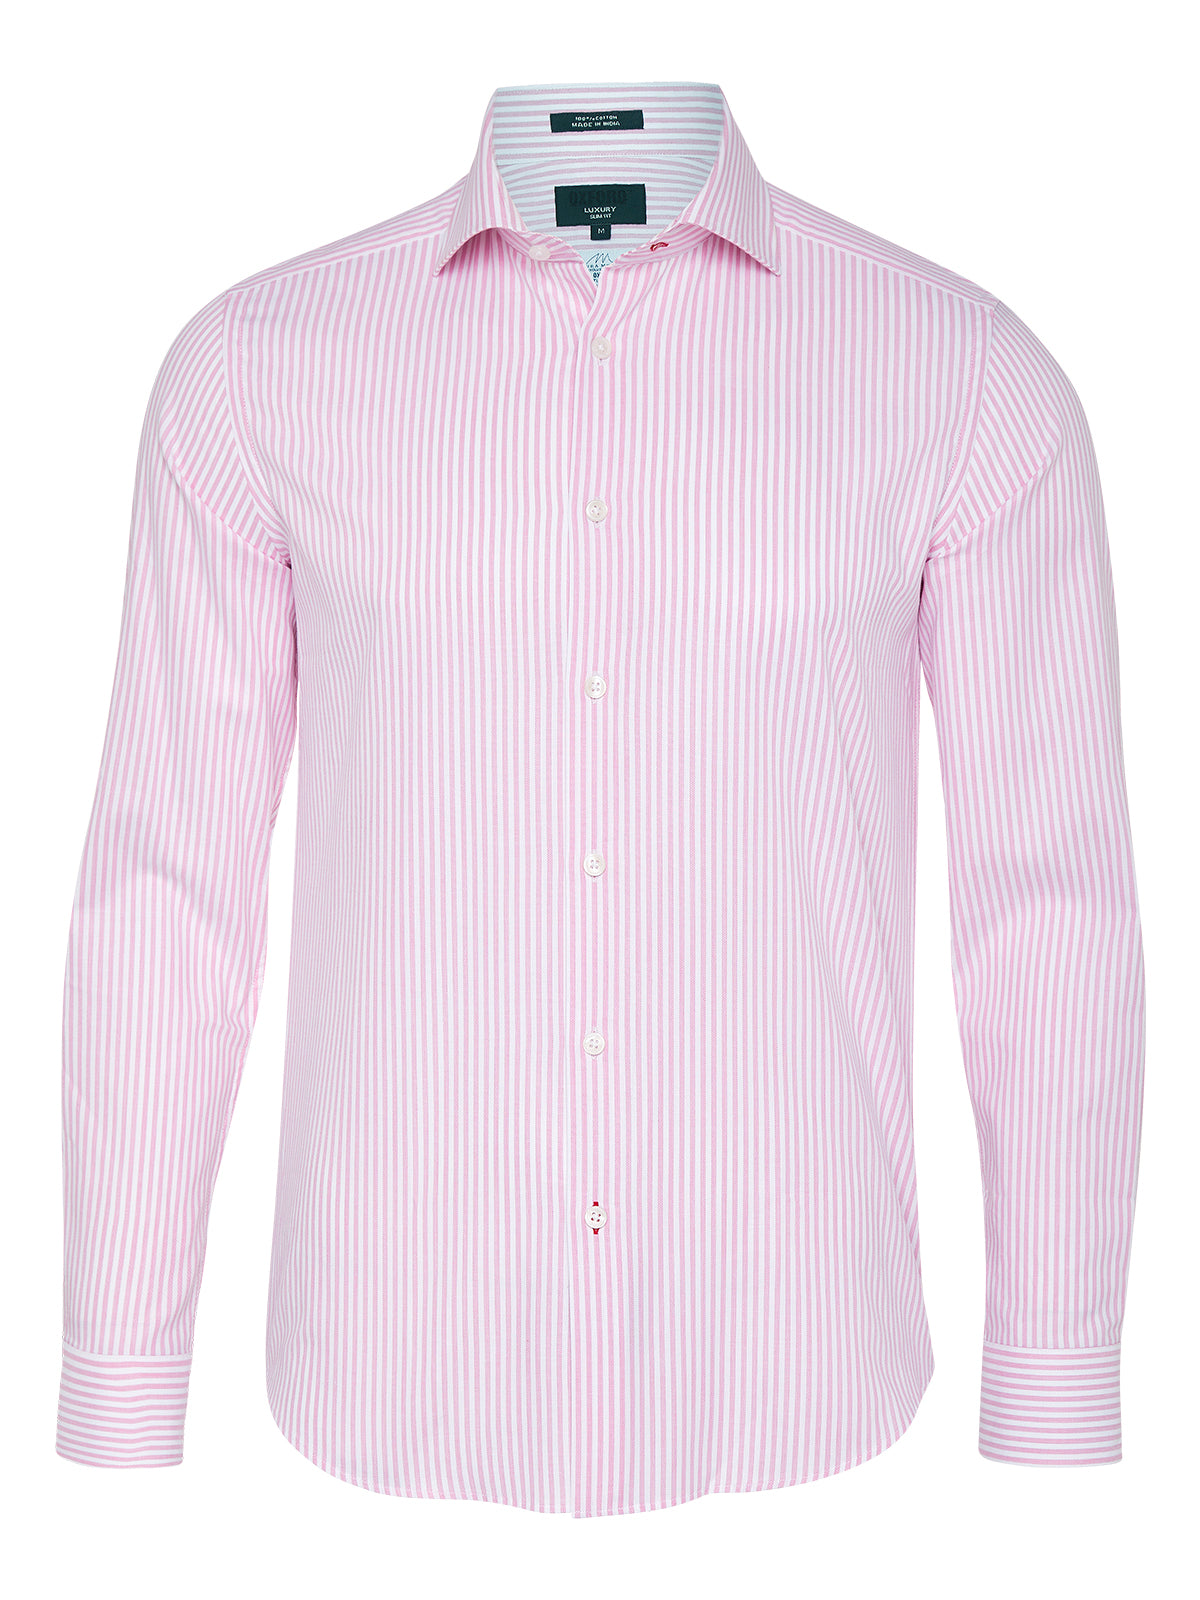 TRAFALGAR STRIPED LUXURY SHIRT PINK